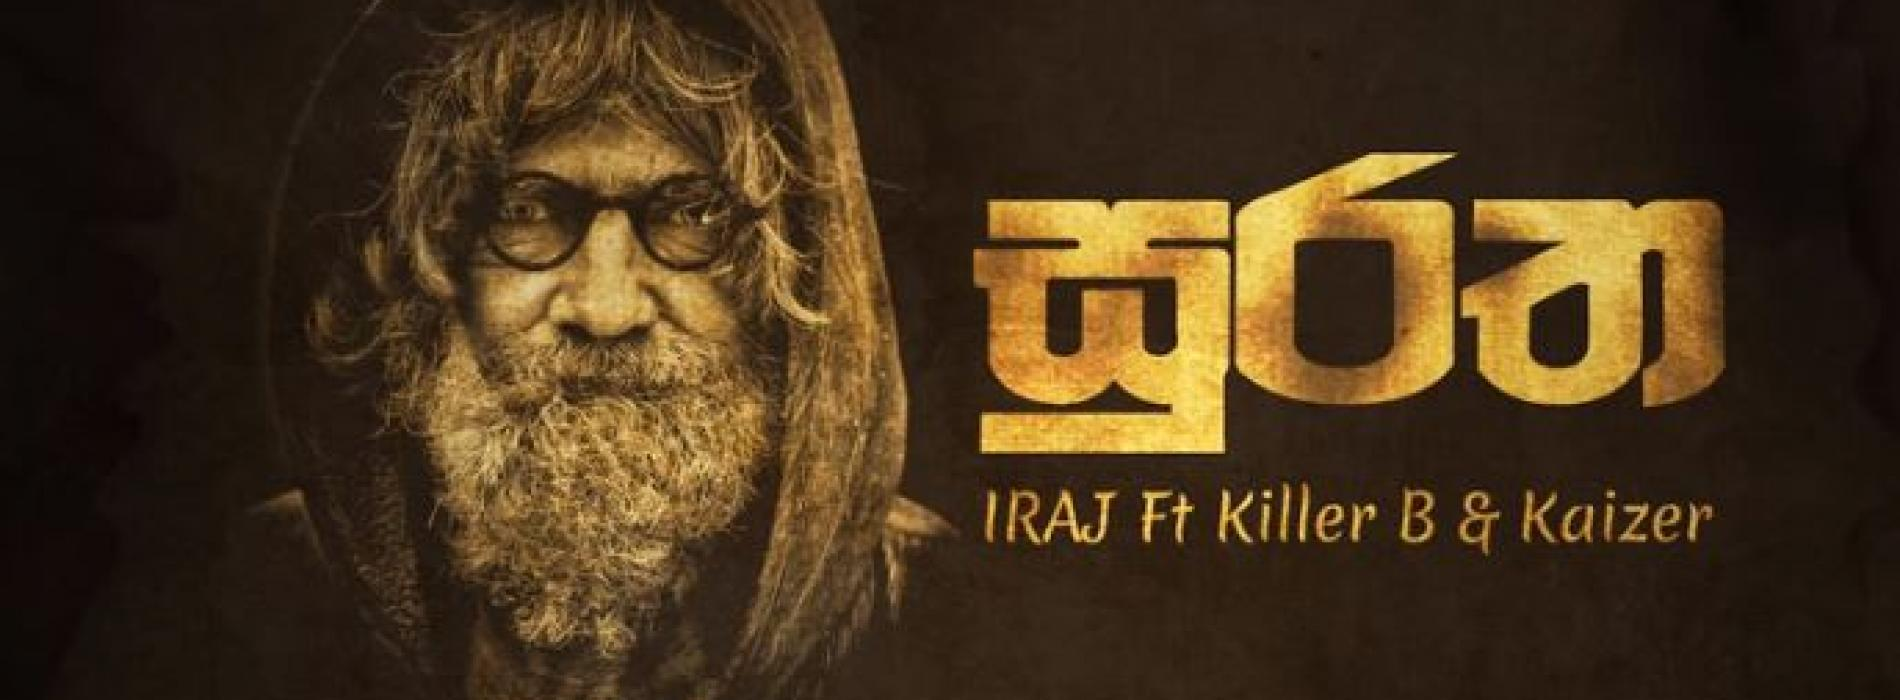 Suratha – IRAJ Ft Killer B & Kaizer